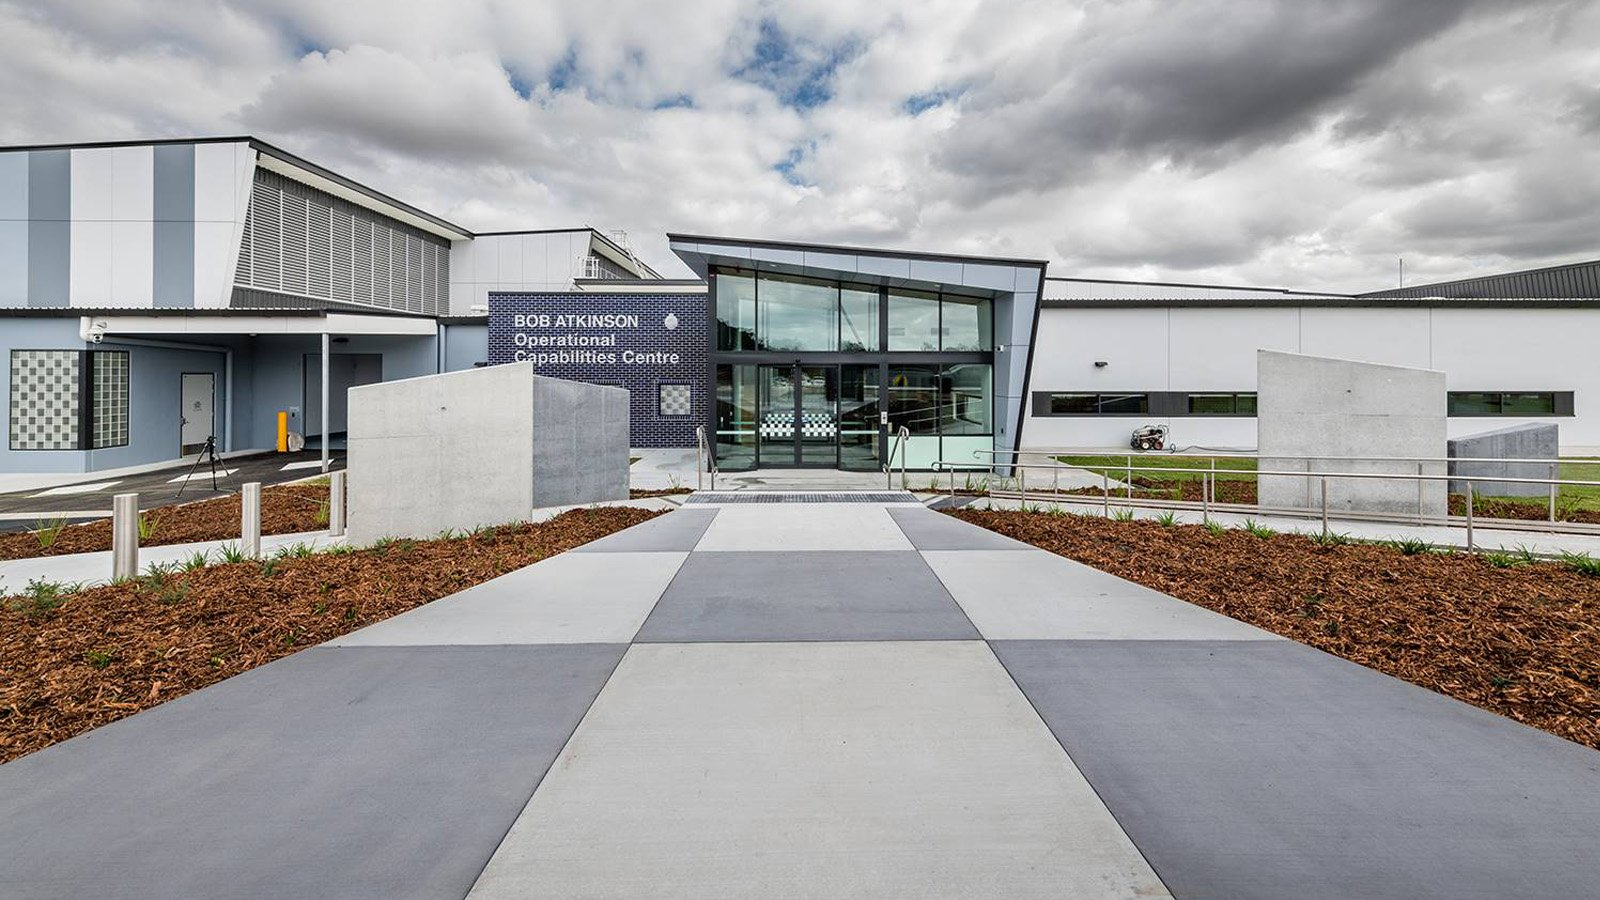 Counter Terrorism and Community Safety Centre, Wacol